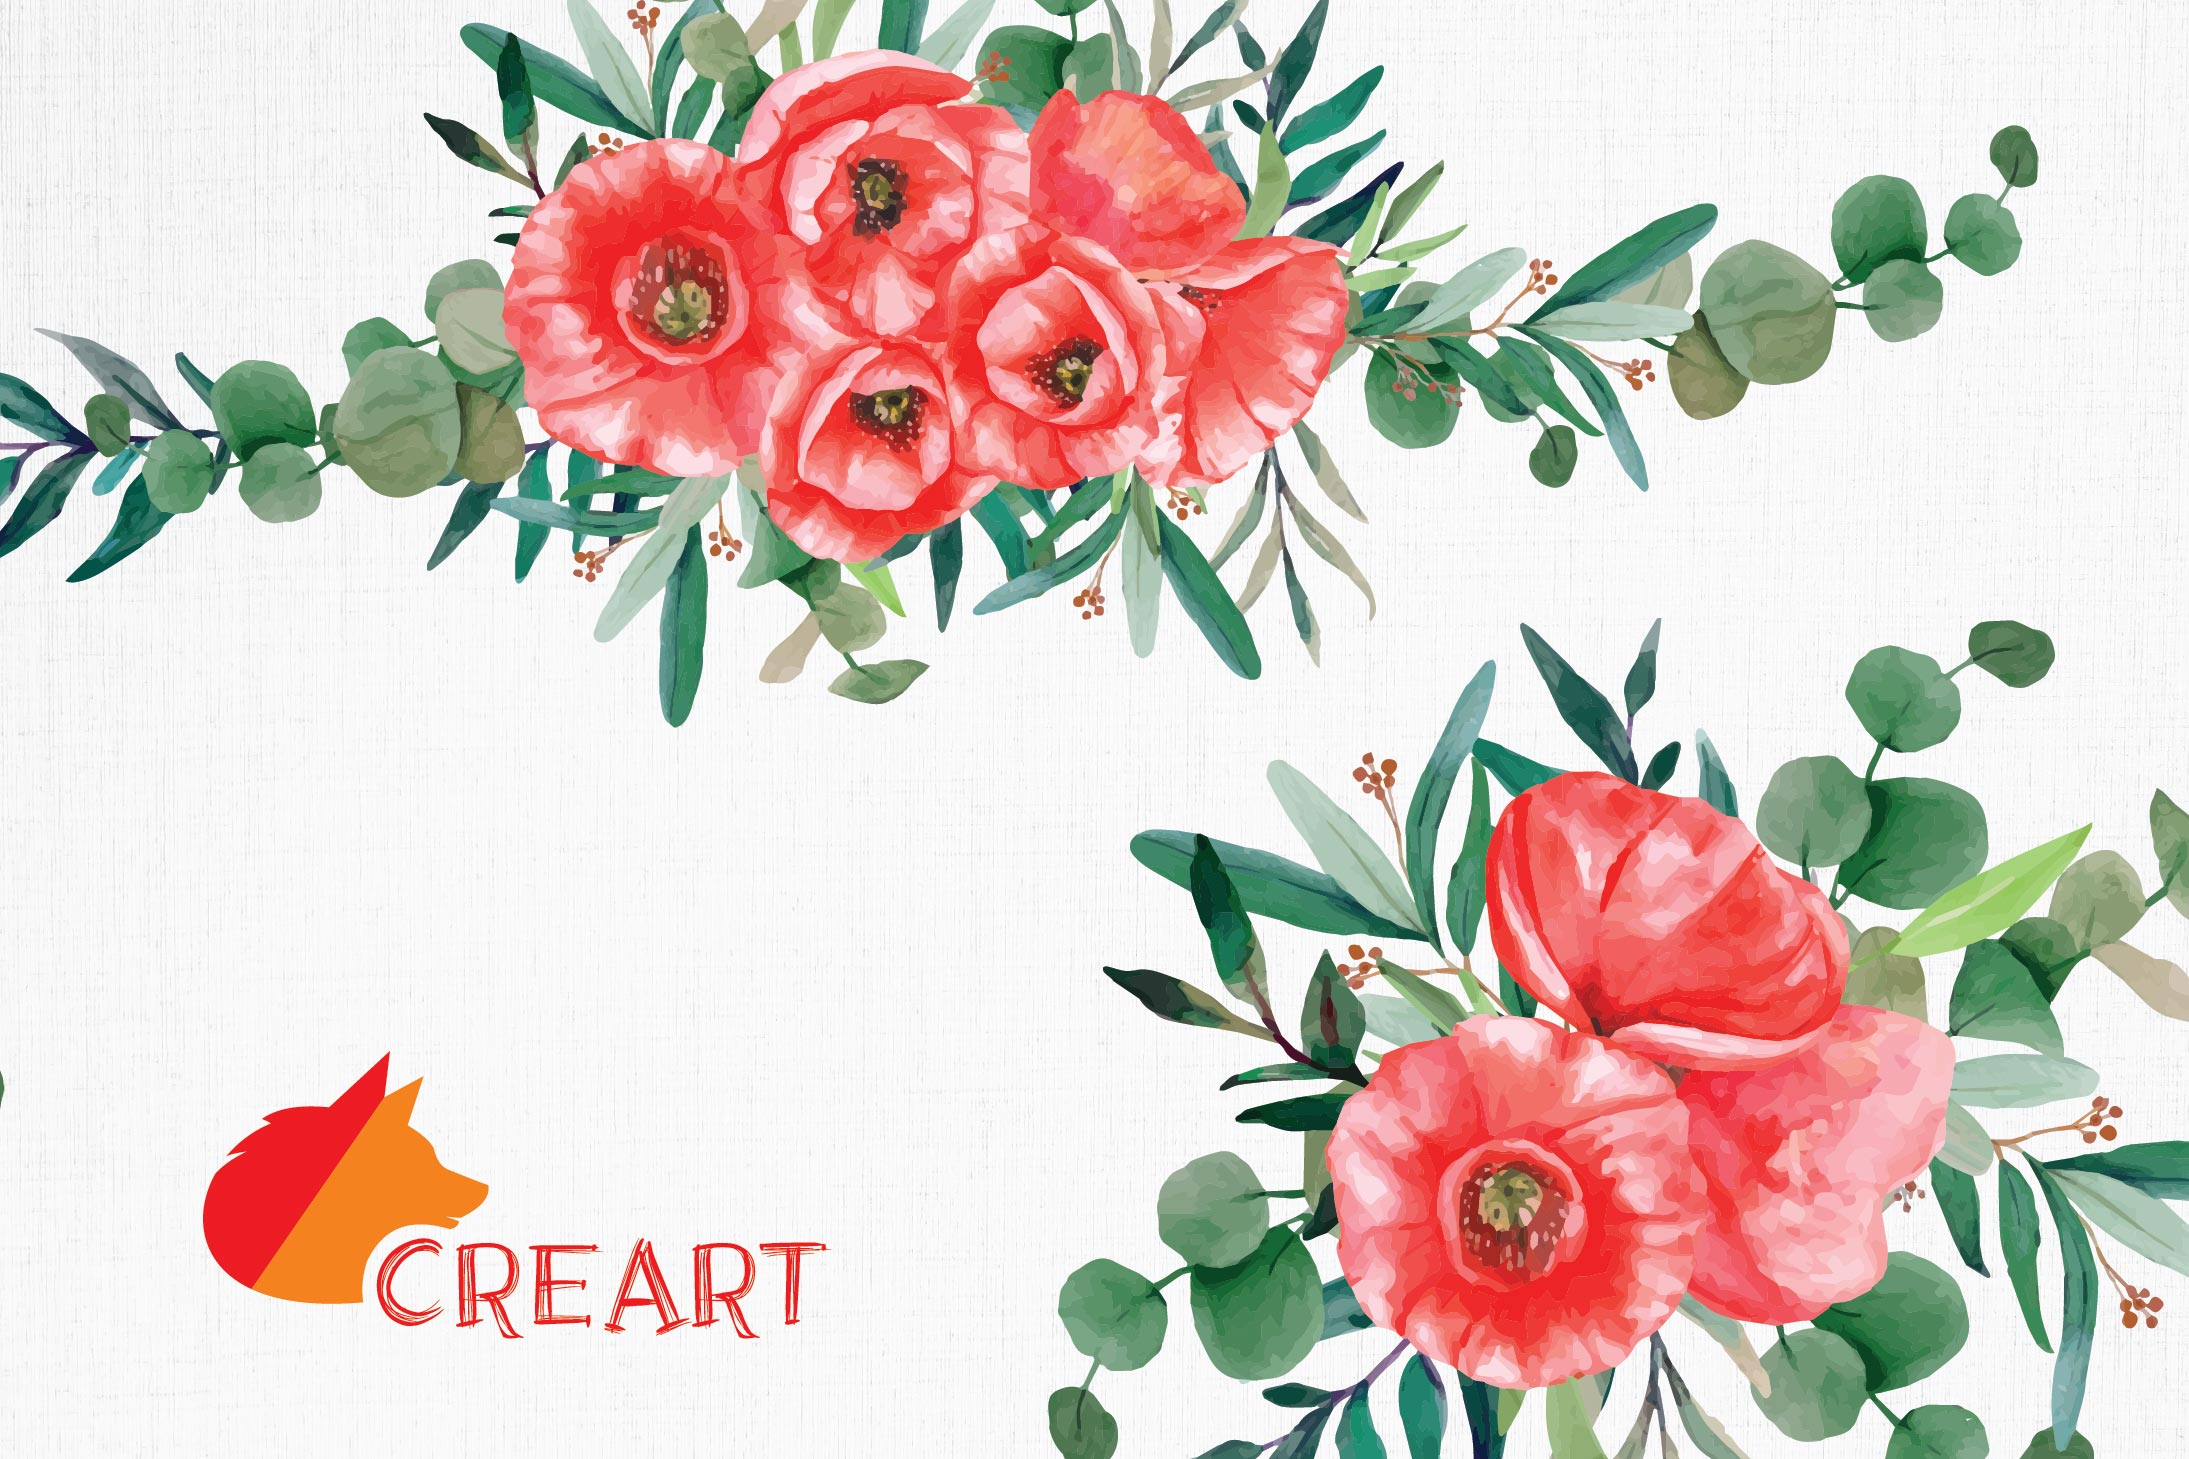 Red poppies floral watercolor wedding bouquets, floral decor example image 9